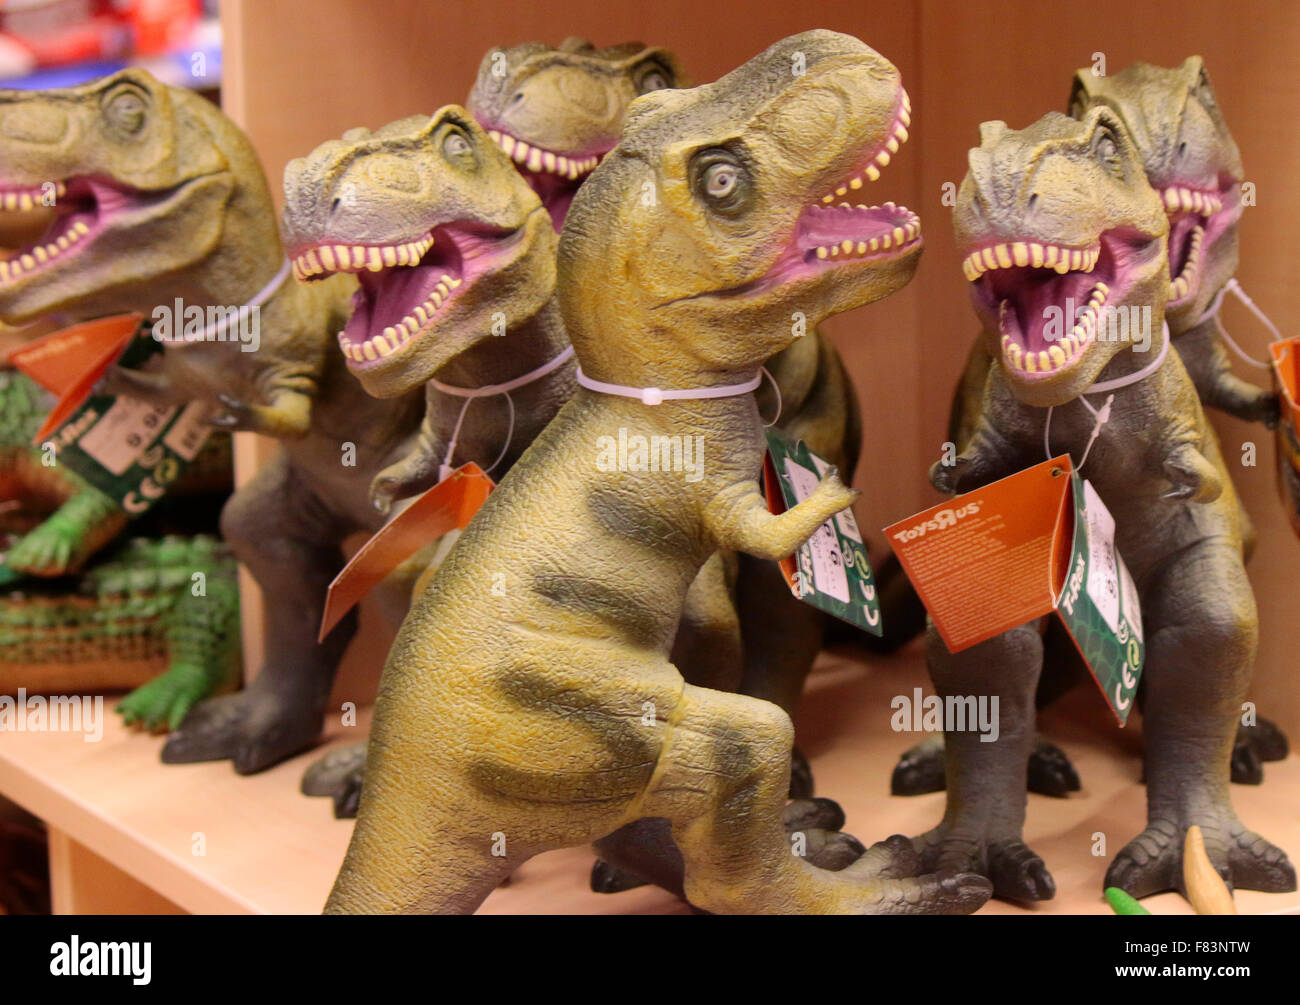 Saurus stock photos saurus stock images alamy tyrannus saurus rex das neue einkaufszentrum mall of berlin am leipziger platz thecheapjerseys Image collections